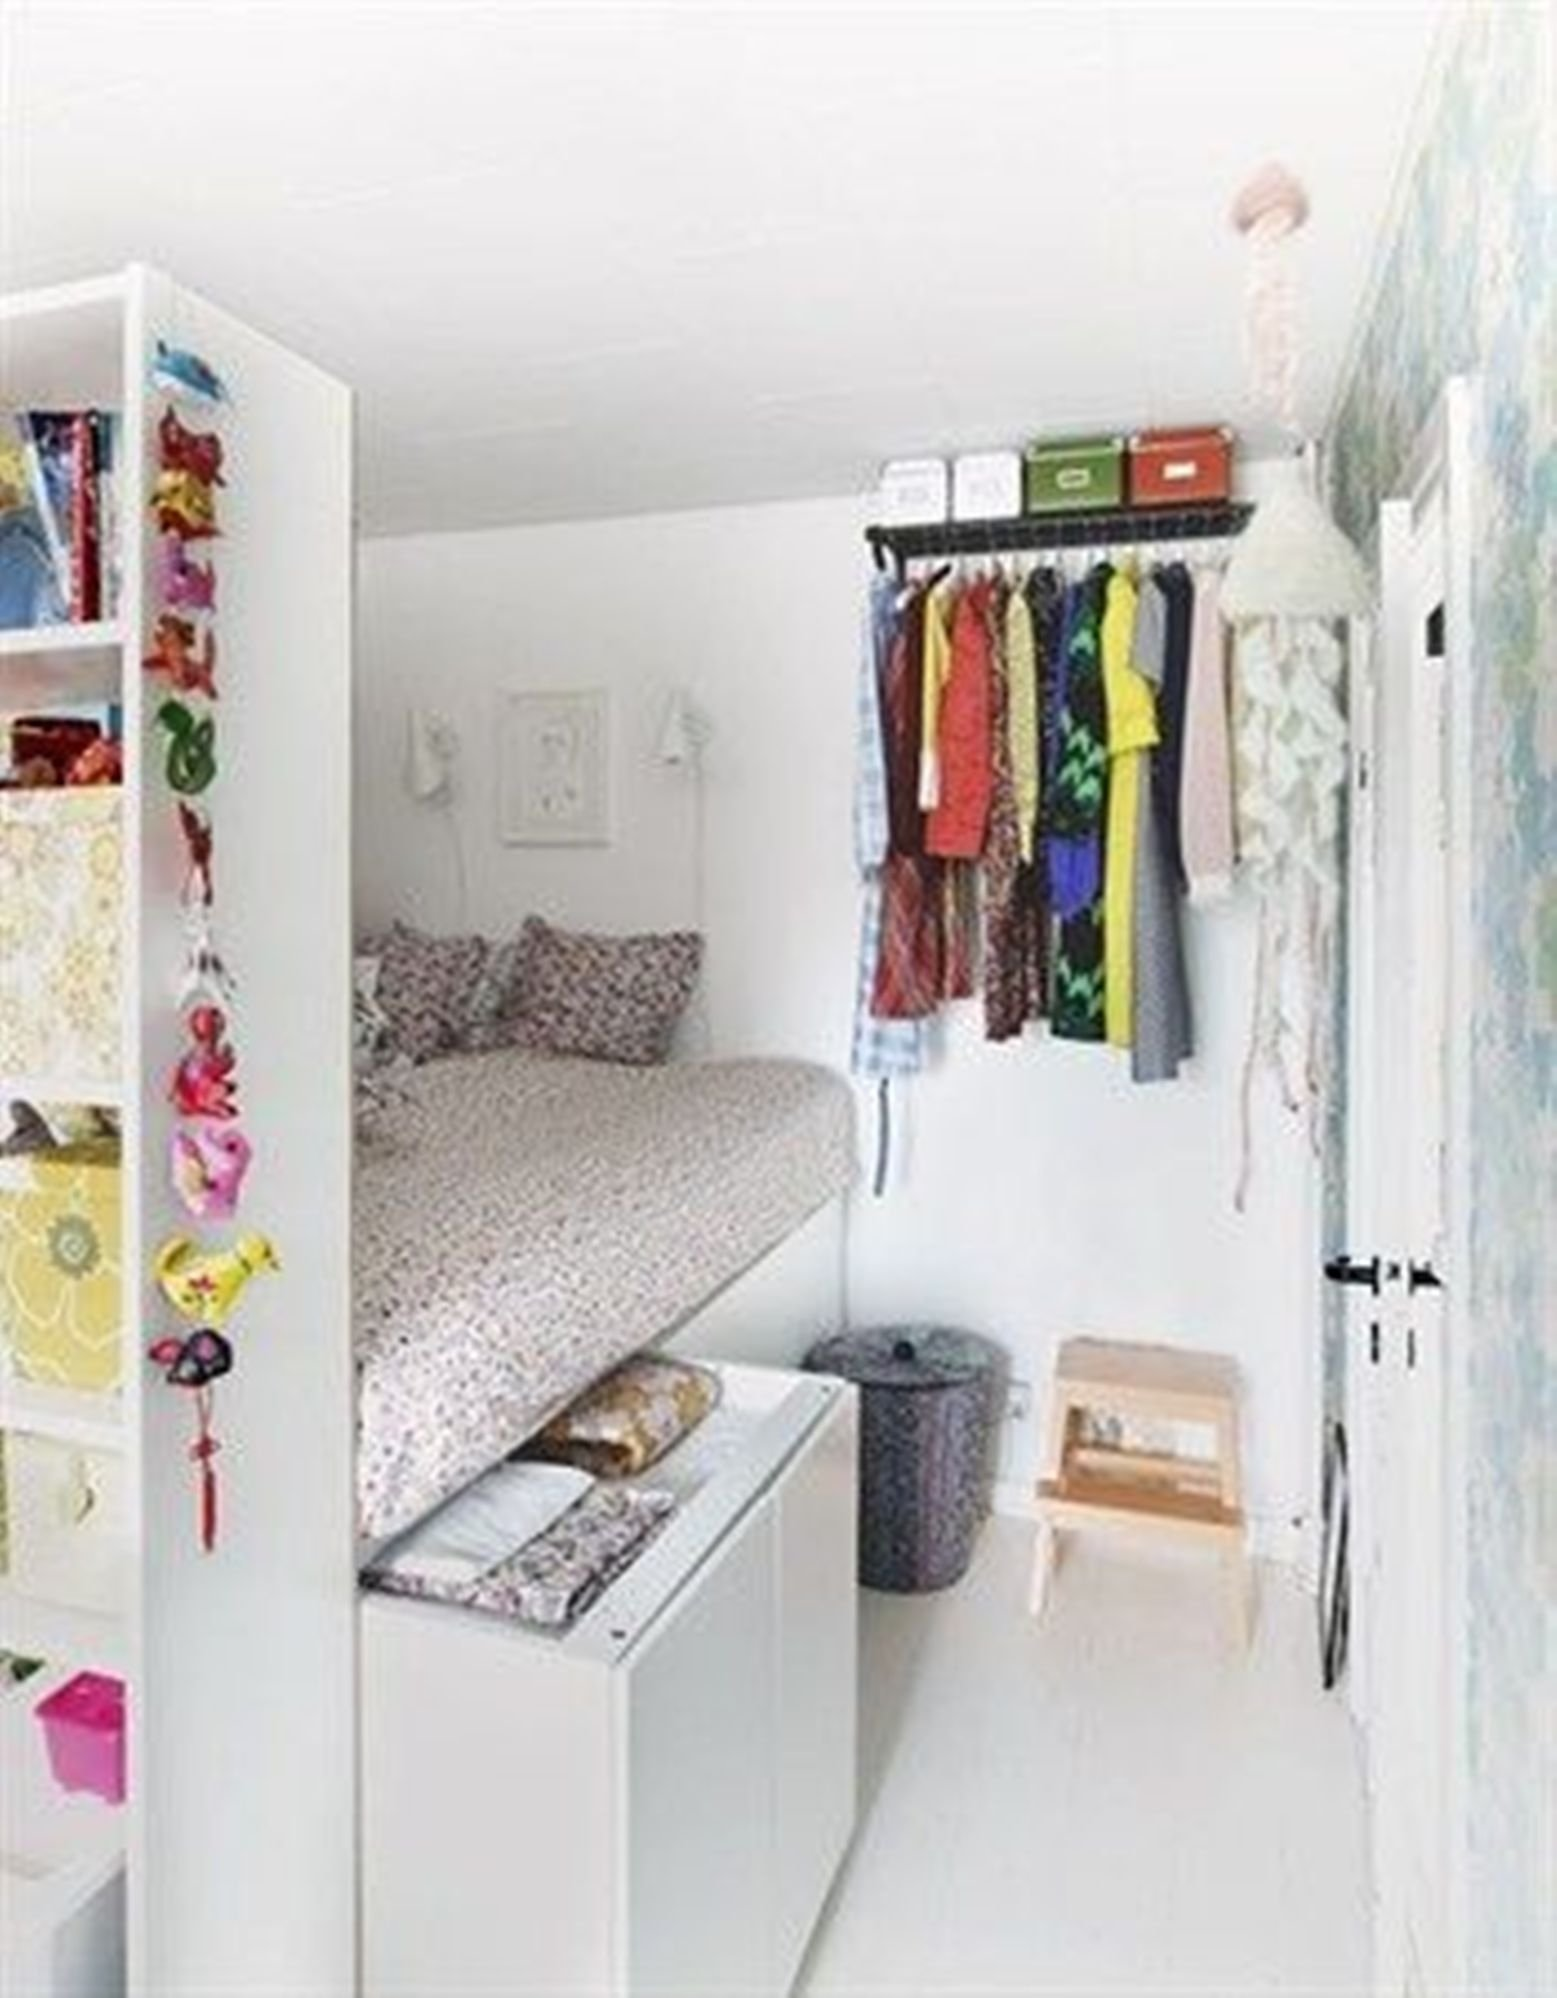 10 Spectacular Organizing Ideas For Small Spaces organizing a small bedroom eas soungwiser excerpt closet ideas for 2020